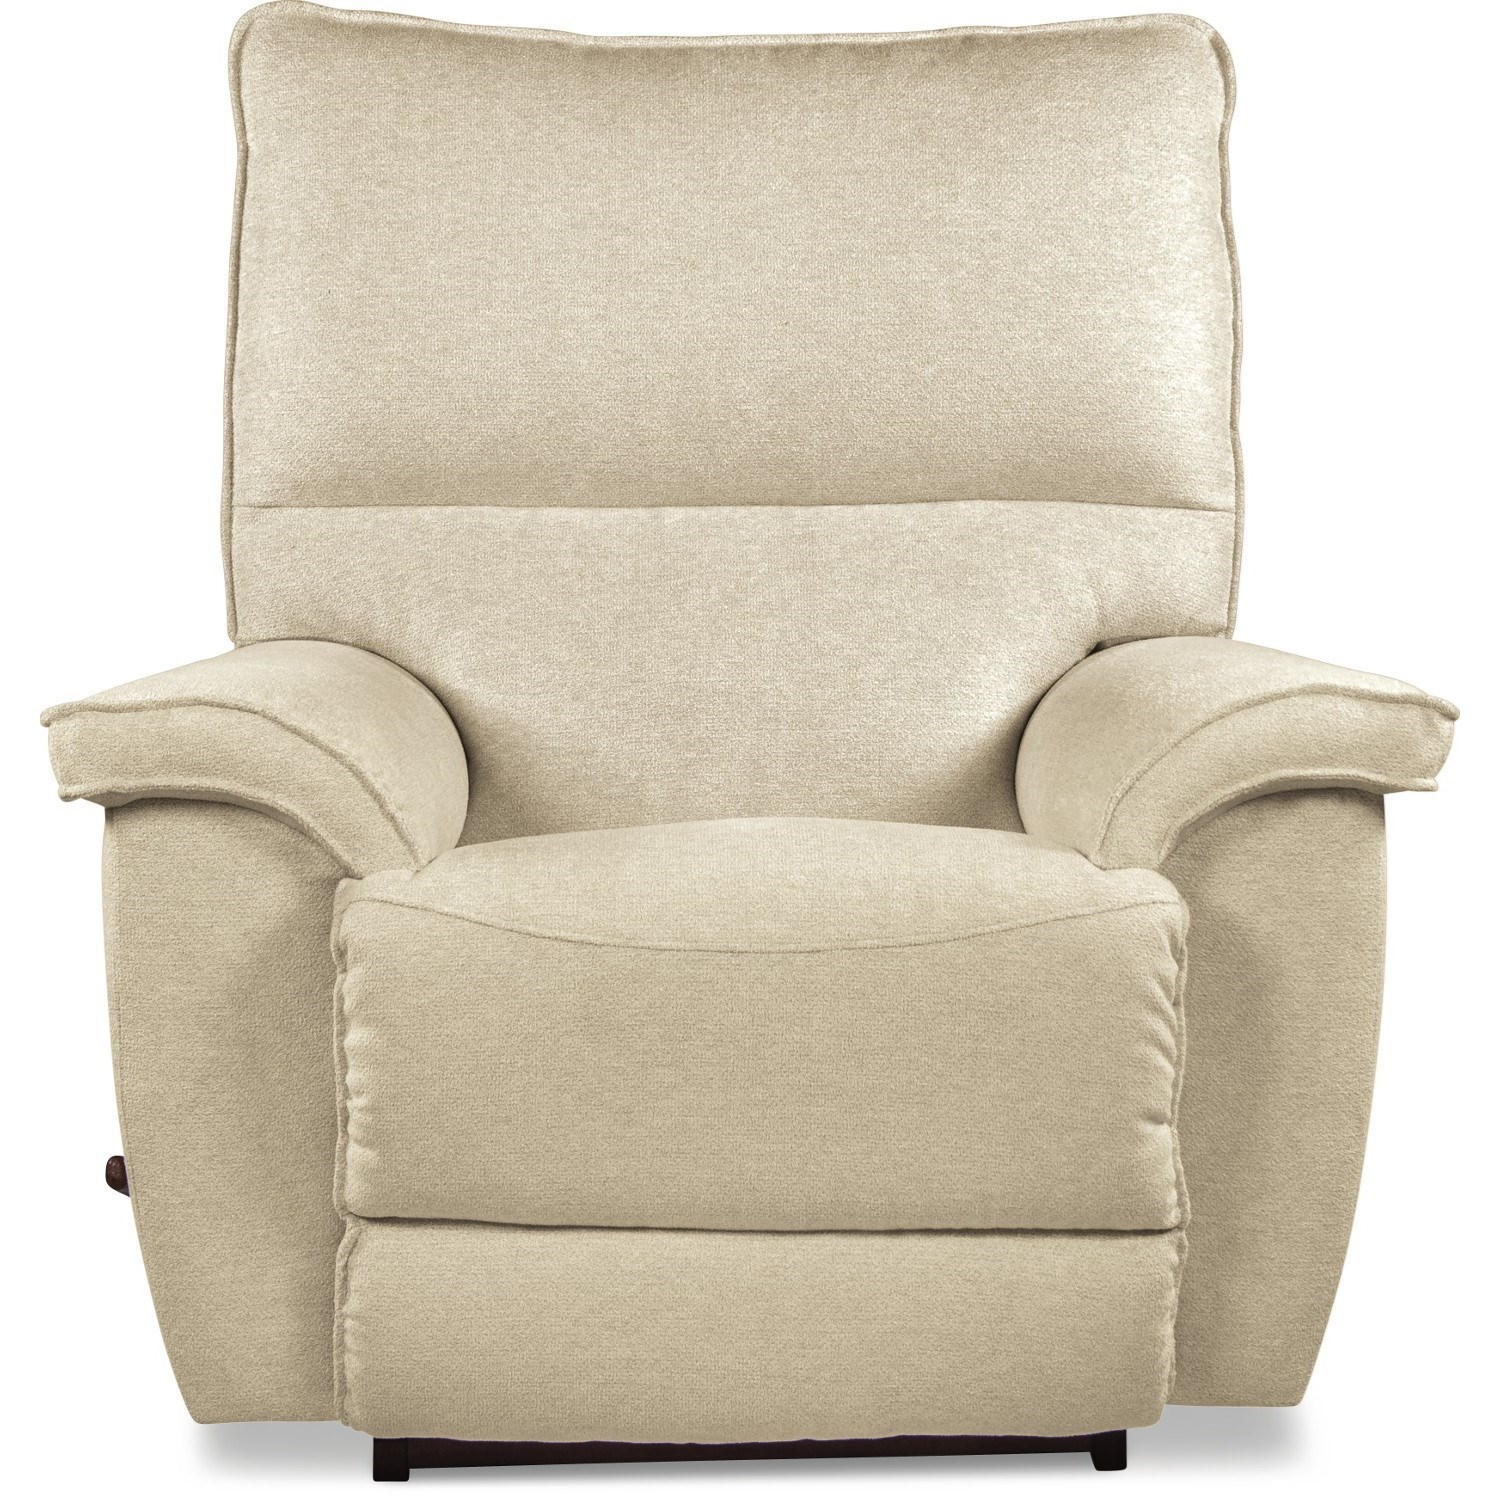 Norris Power Rocking Recliner by La-Z-Boy at Houston's Yuma Furniture